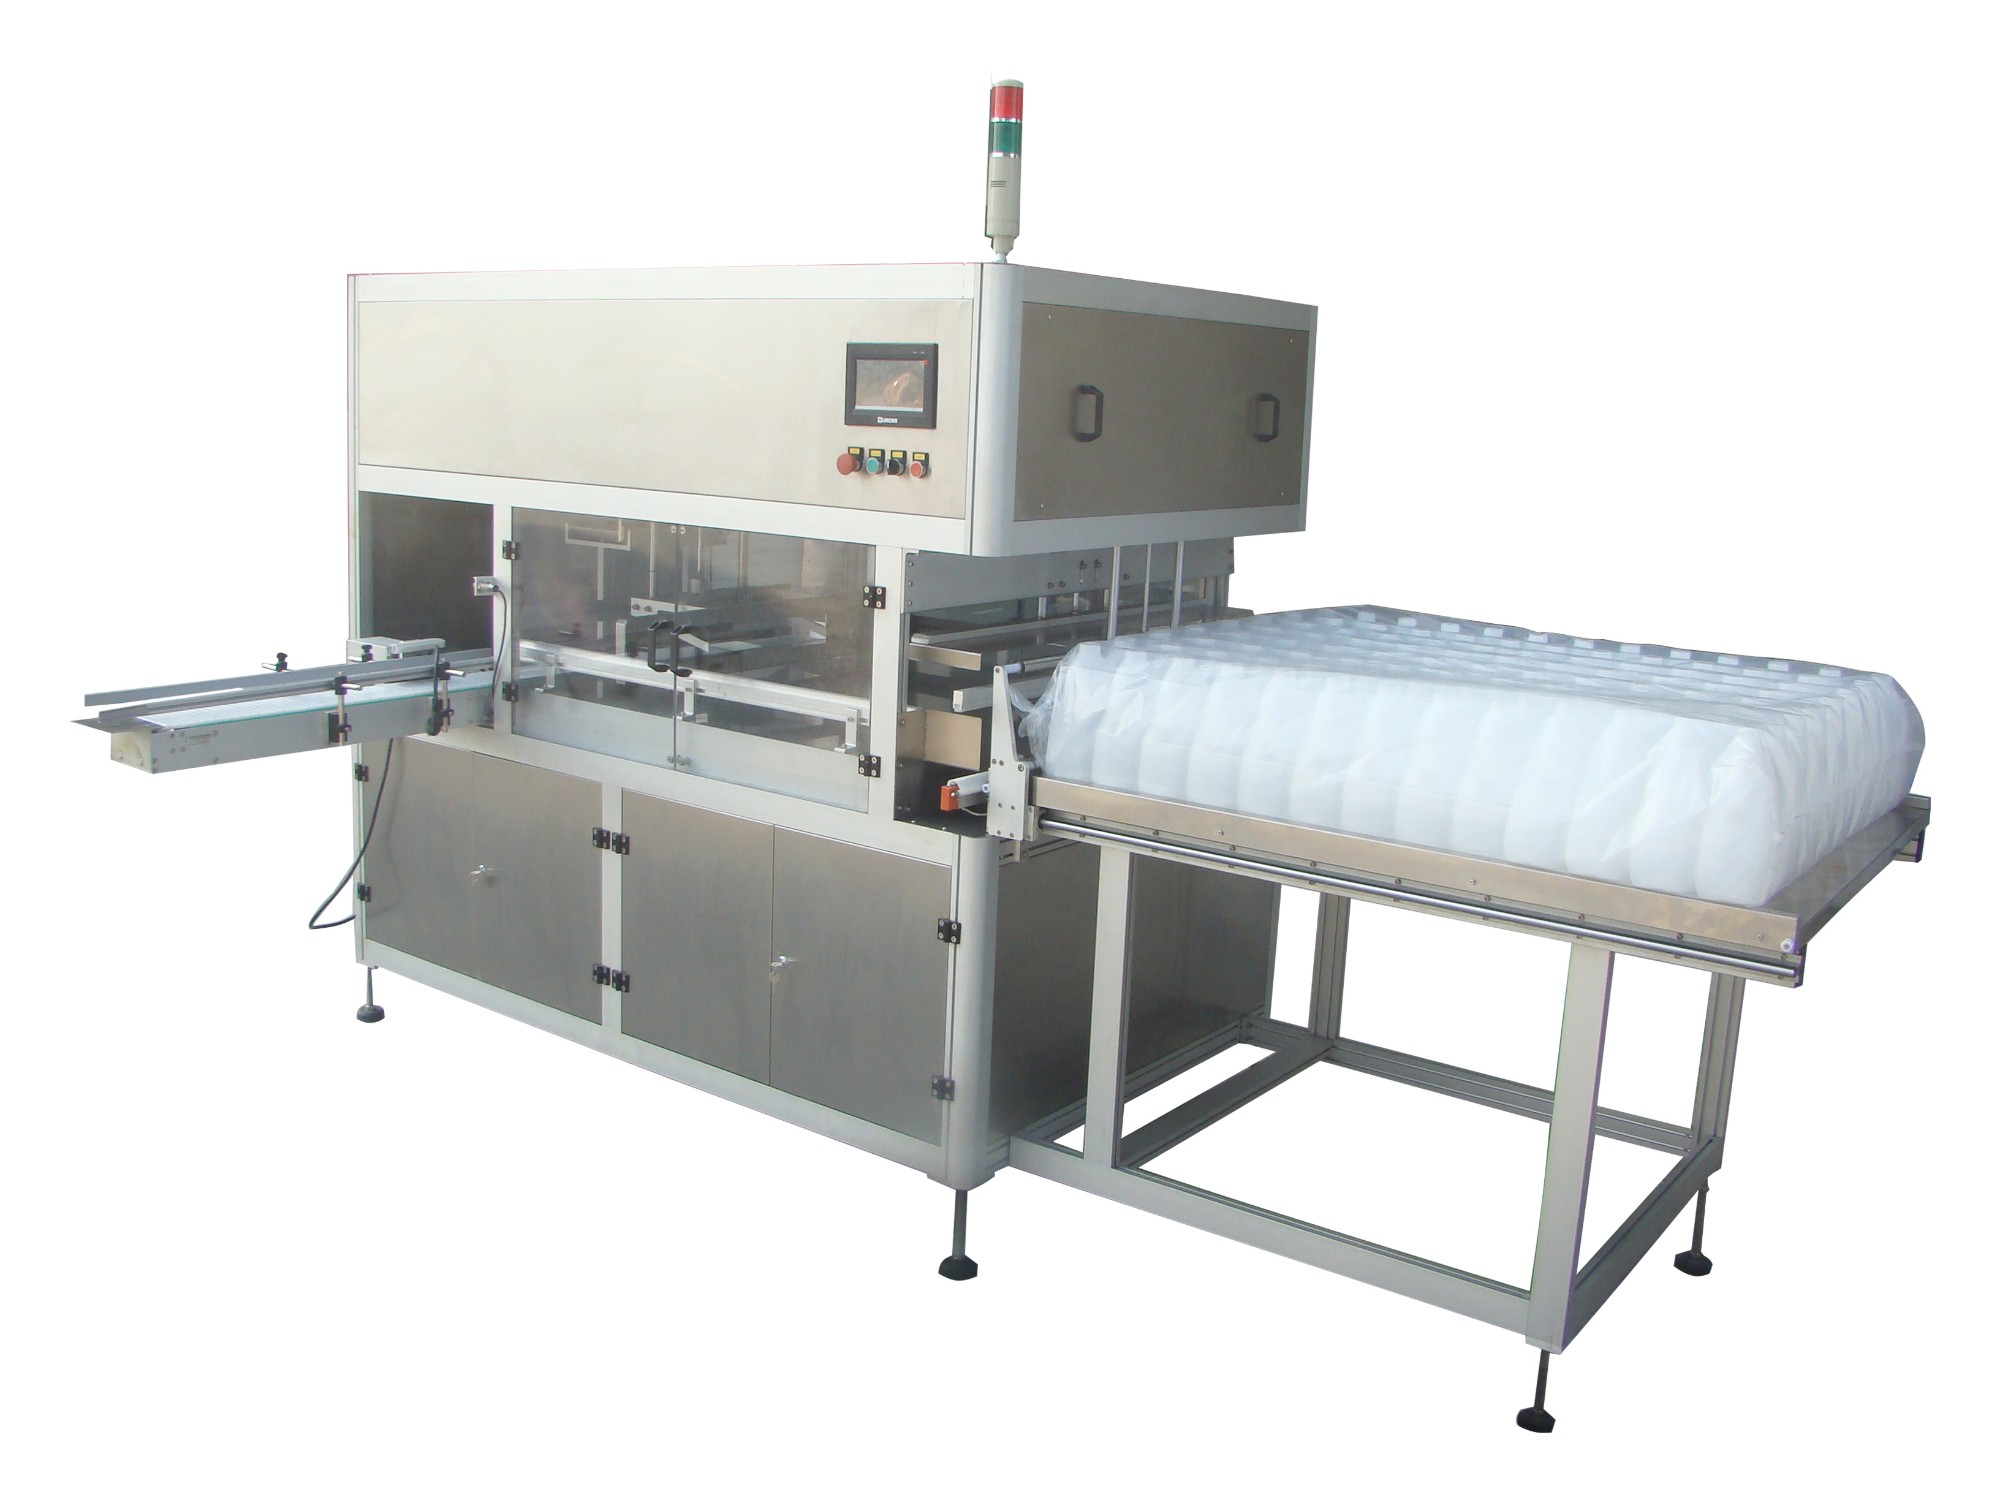 Semi Auto Bottle Bagging Machine Manufacturers, Semi Auto Bottle Bagging Machine Factory, Supply Semi Auto Bottle Bagging Machine